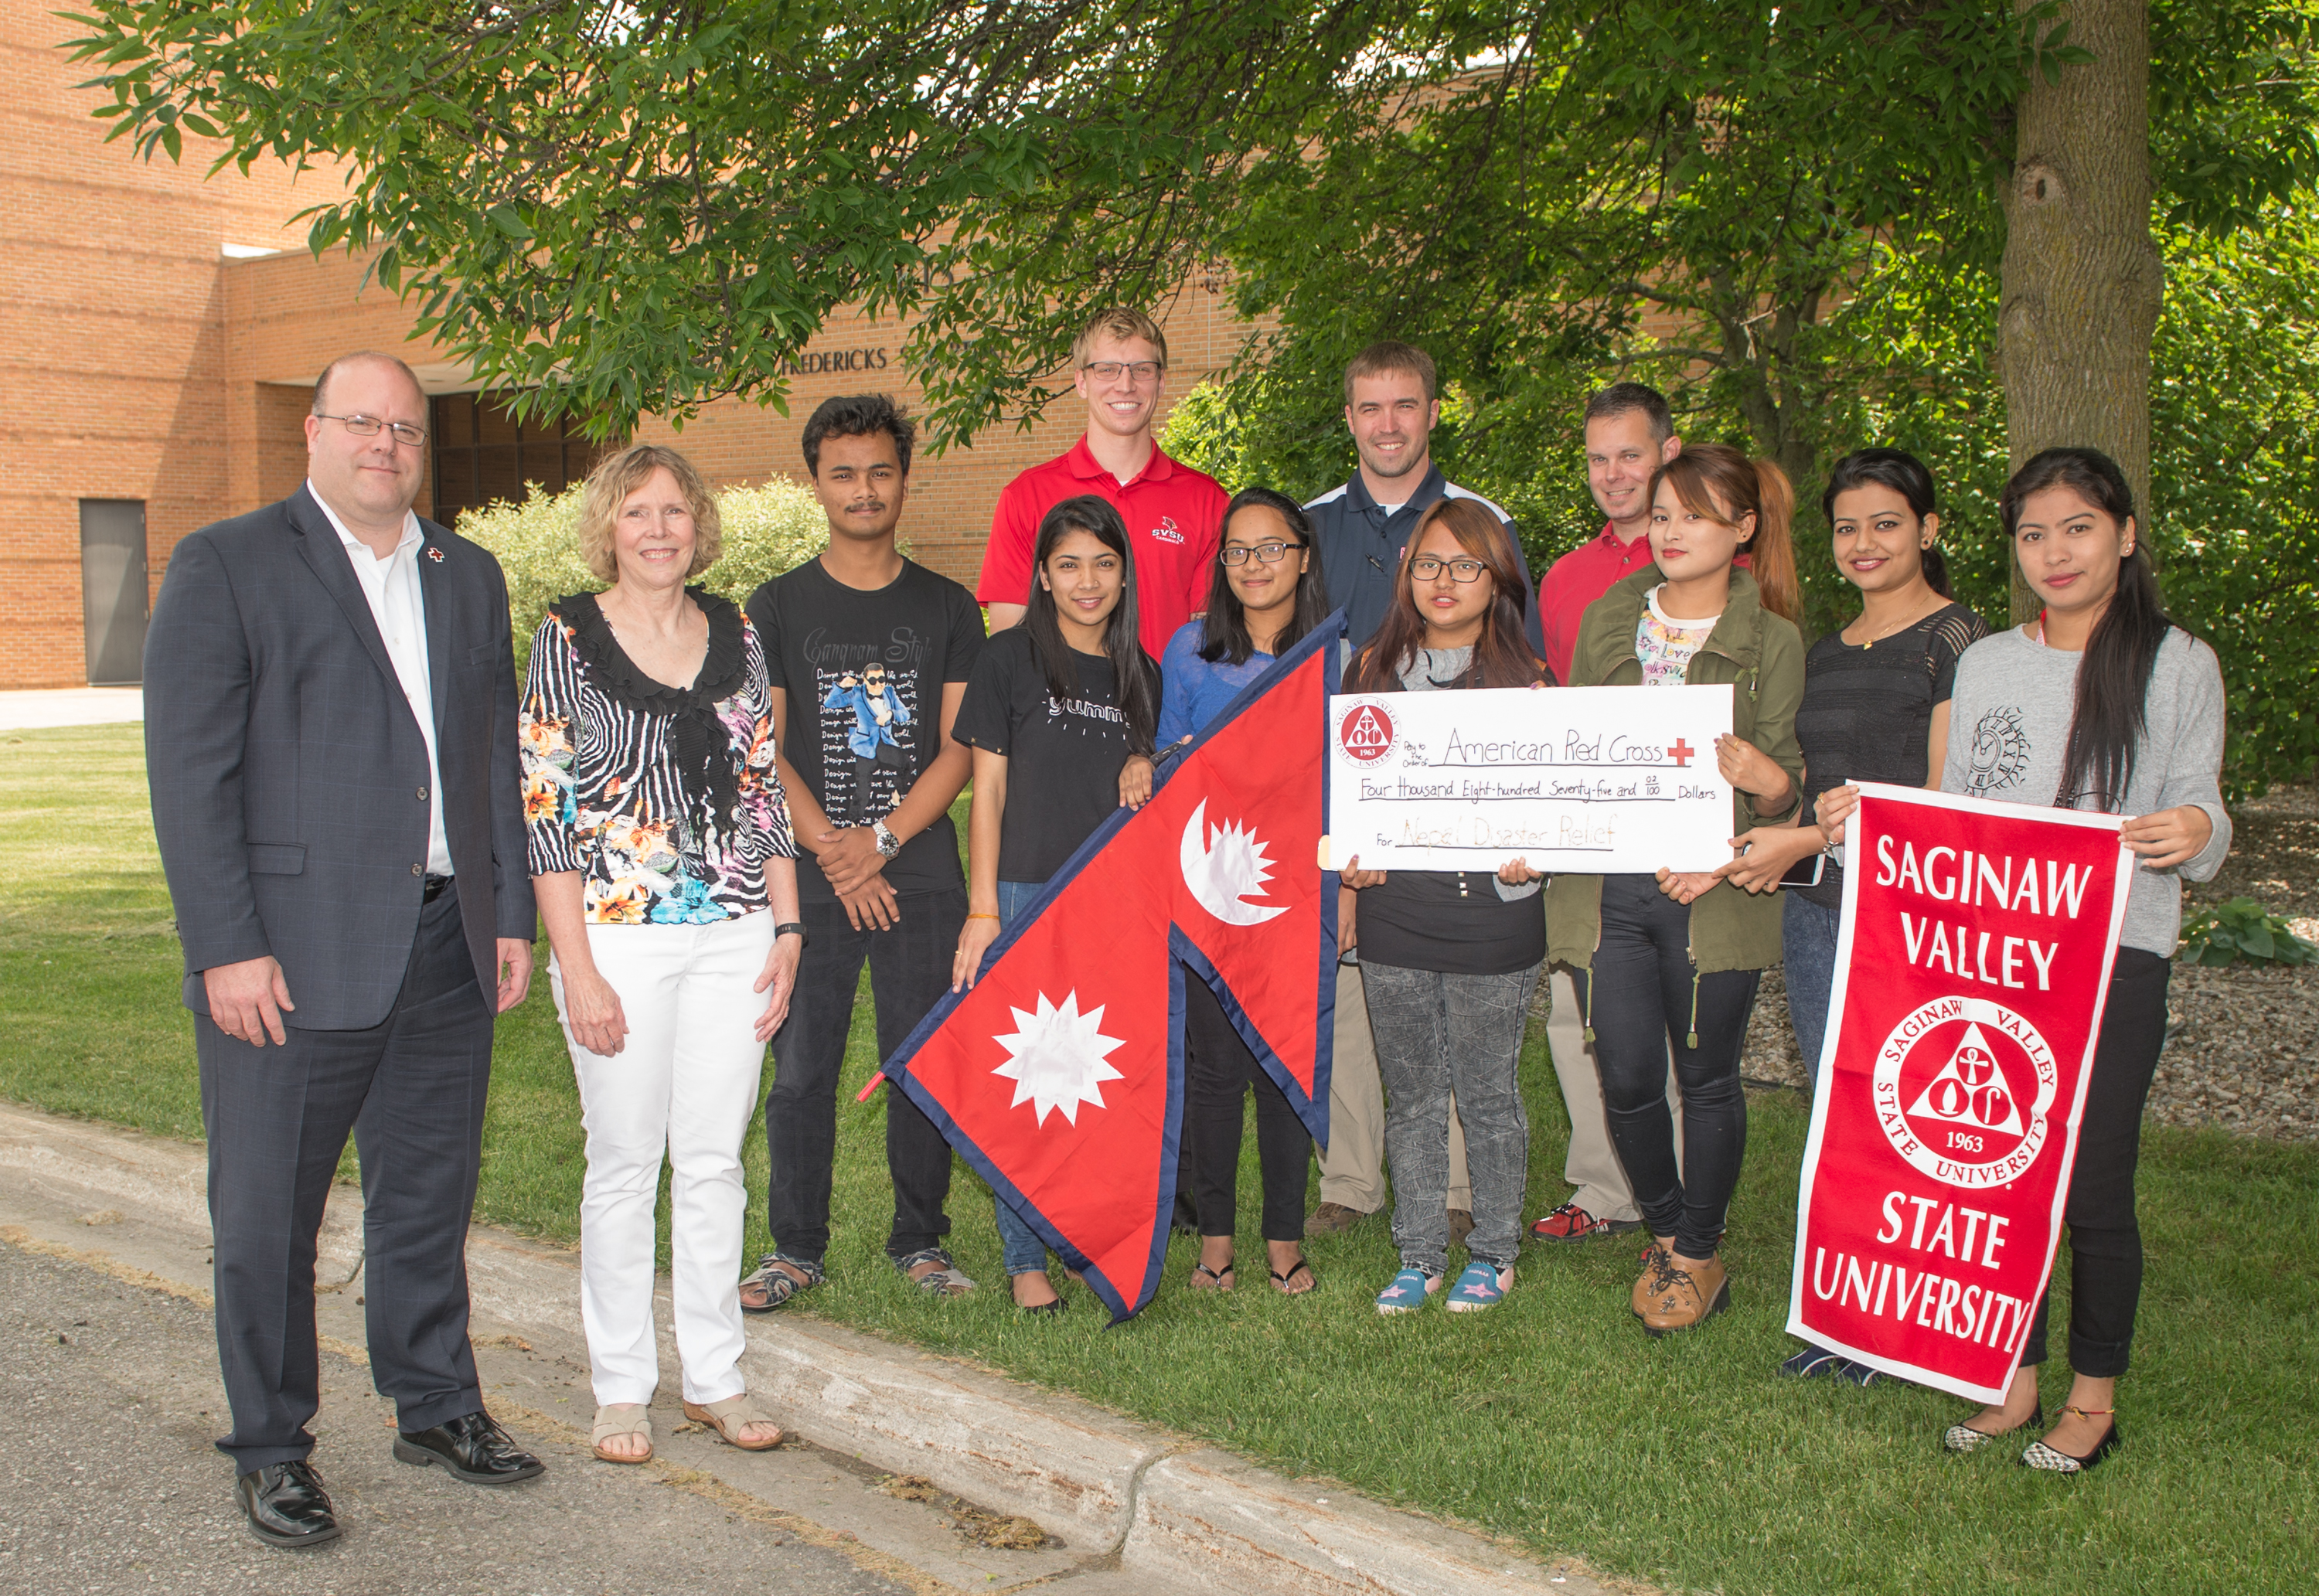 SVSU students and faculty give nearly $5,000 to East Central Bay Chapter of The American Red Cross for disaster relief in Nepal.